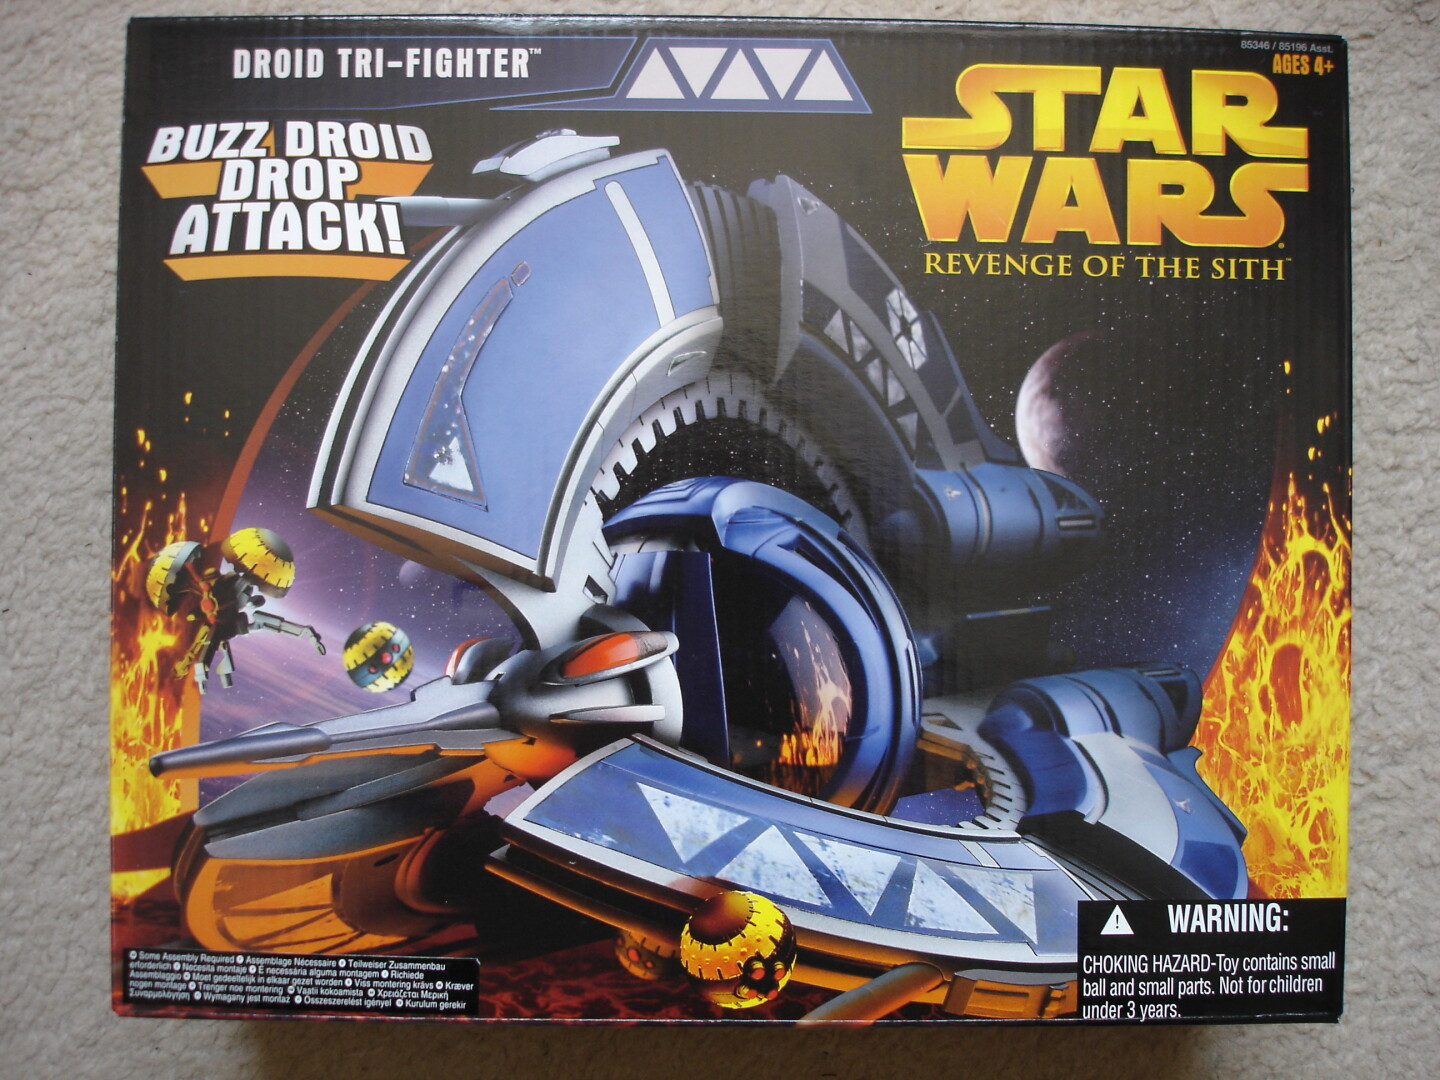 ROTS Droid Tri-Fighter